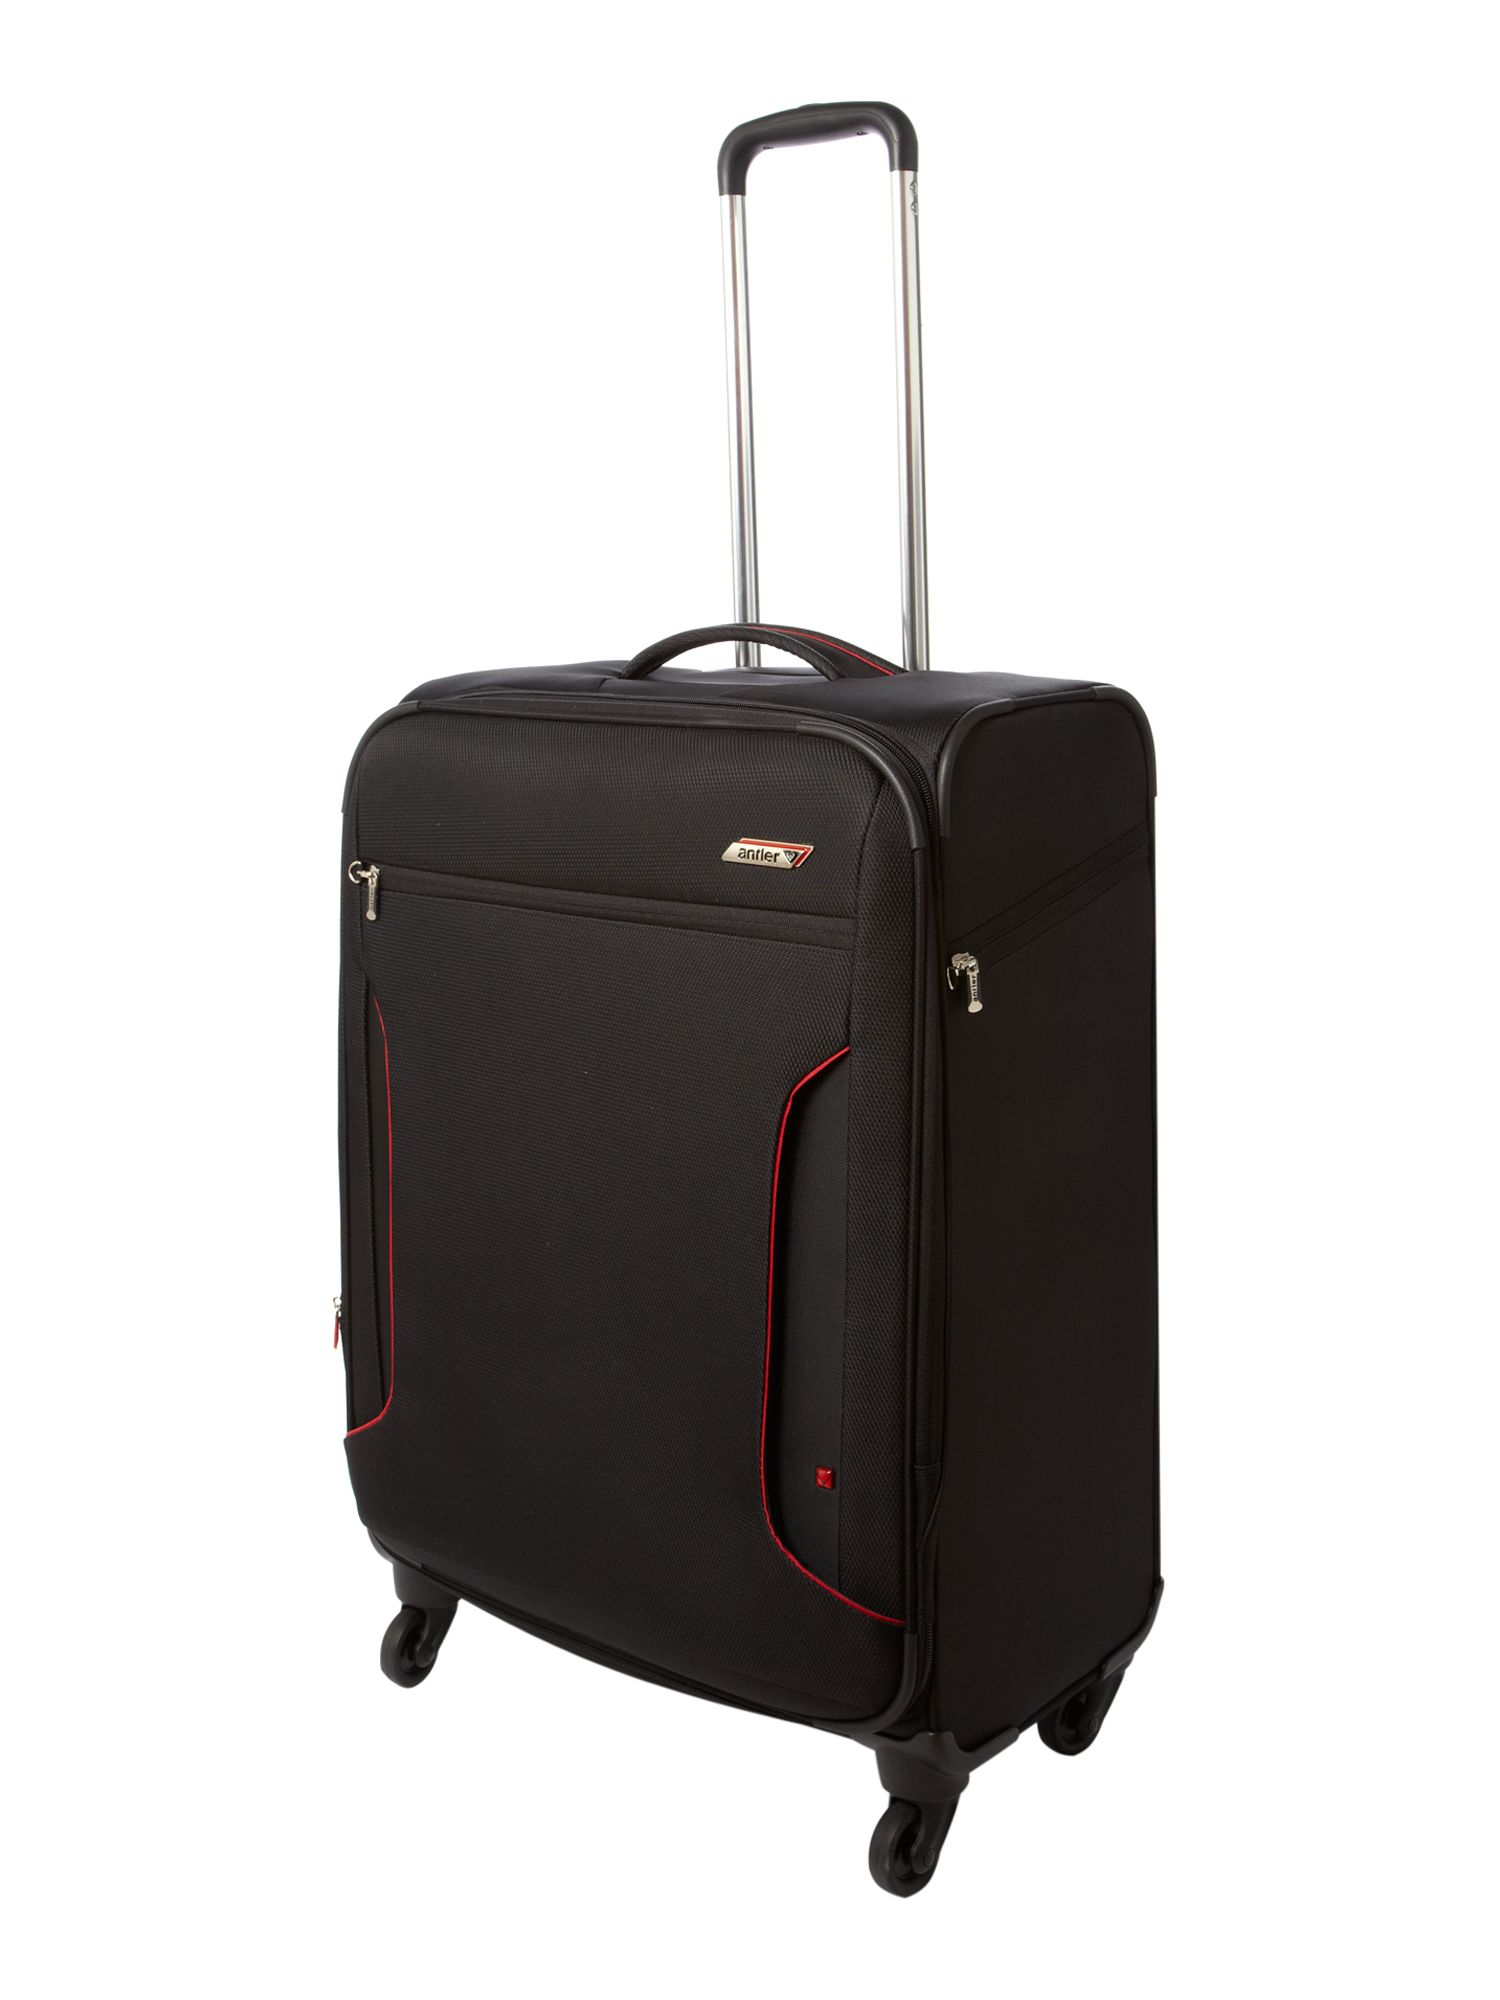 Cyberlite Black & Red 70cm 4 Wheel Case